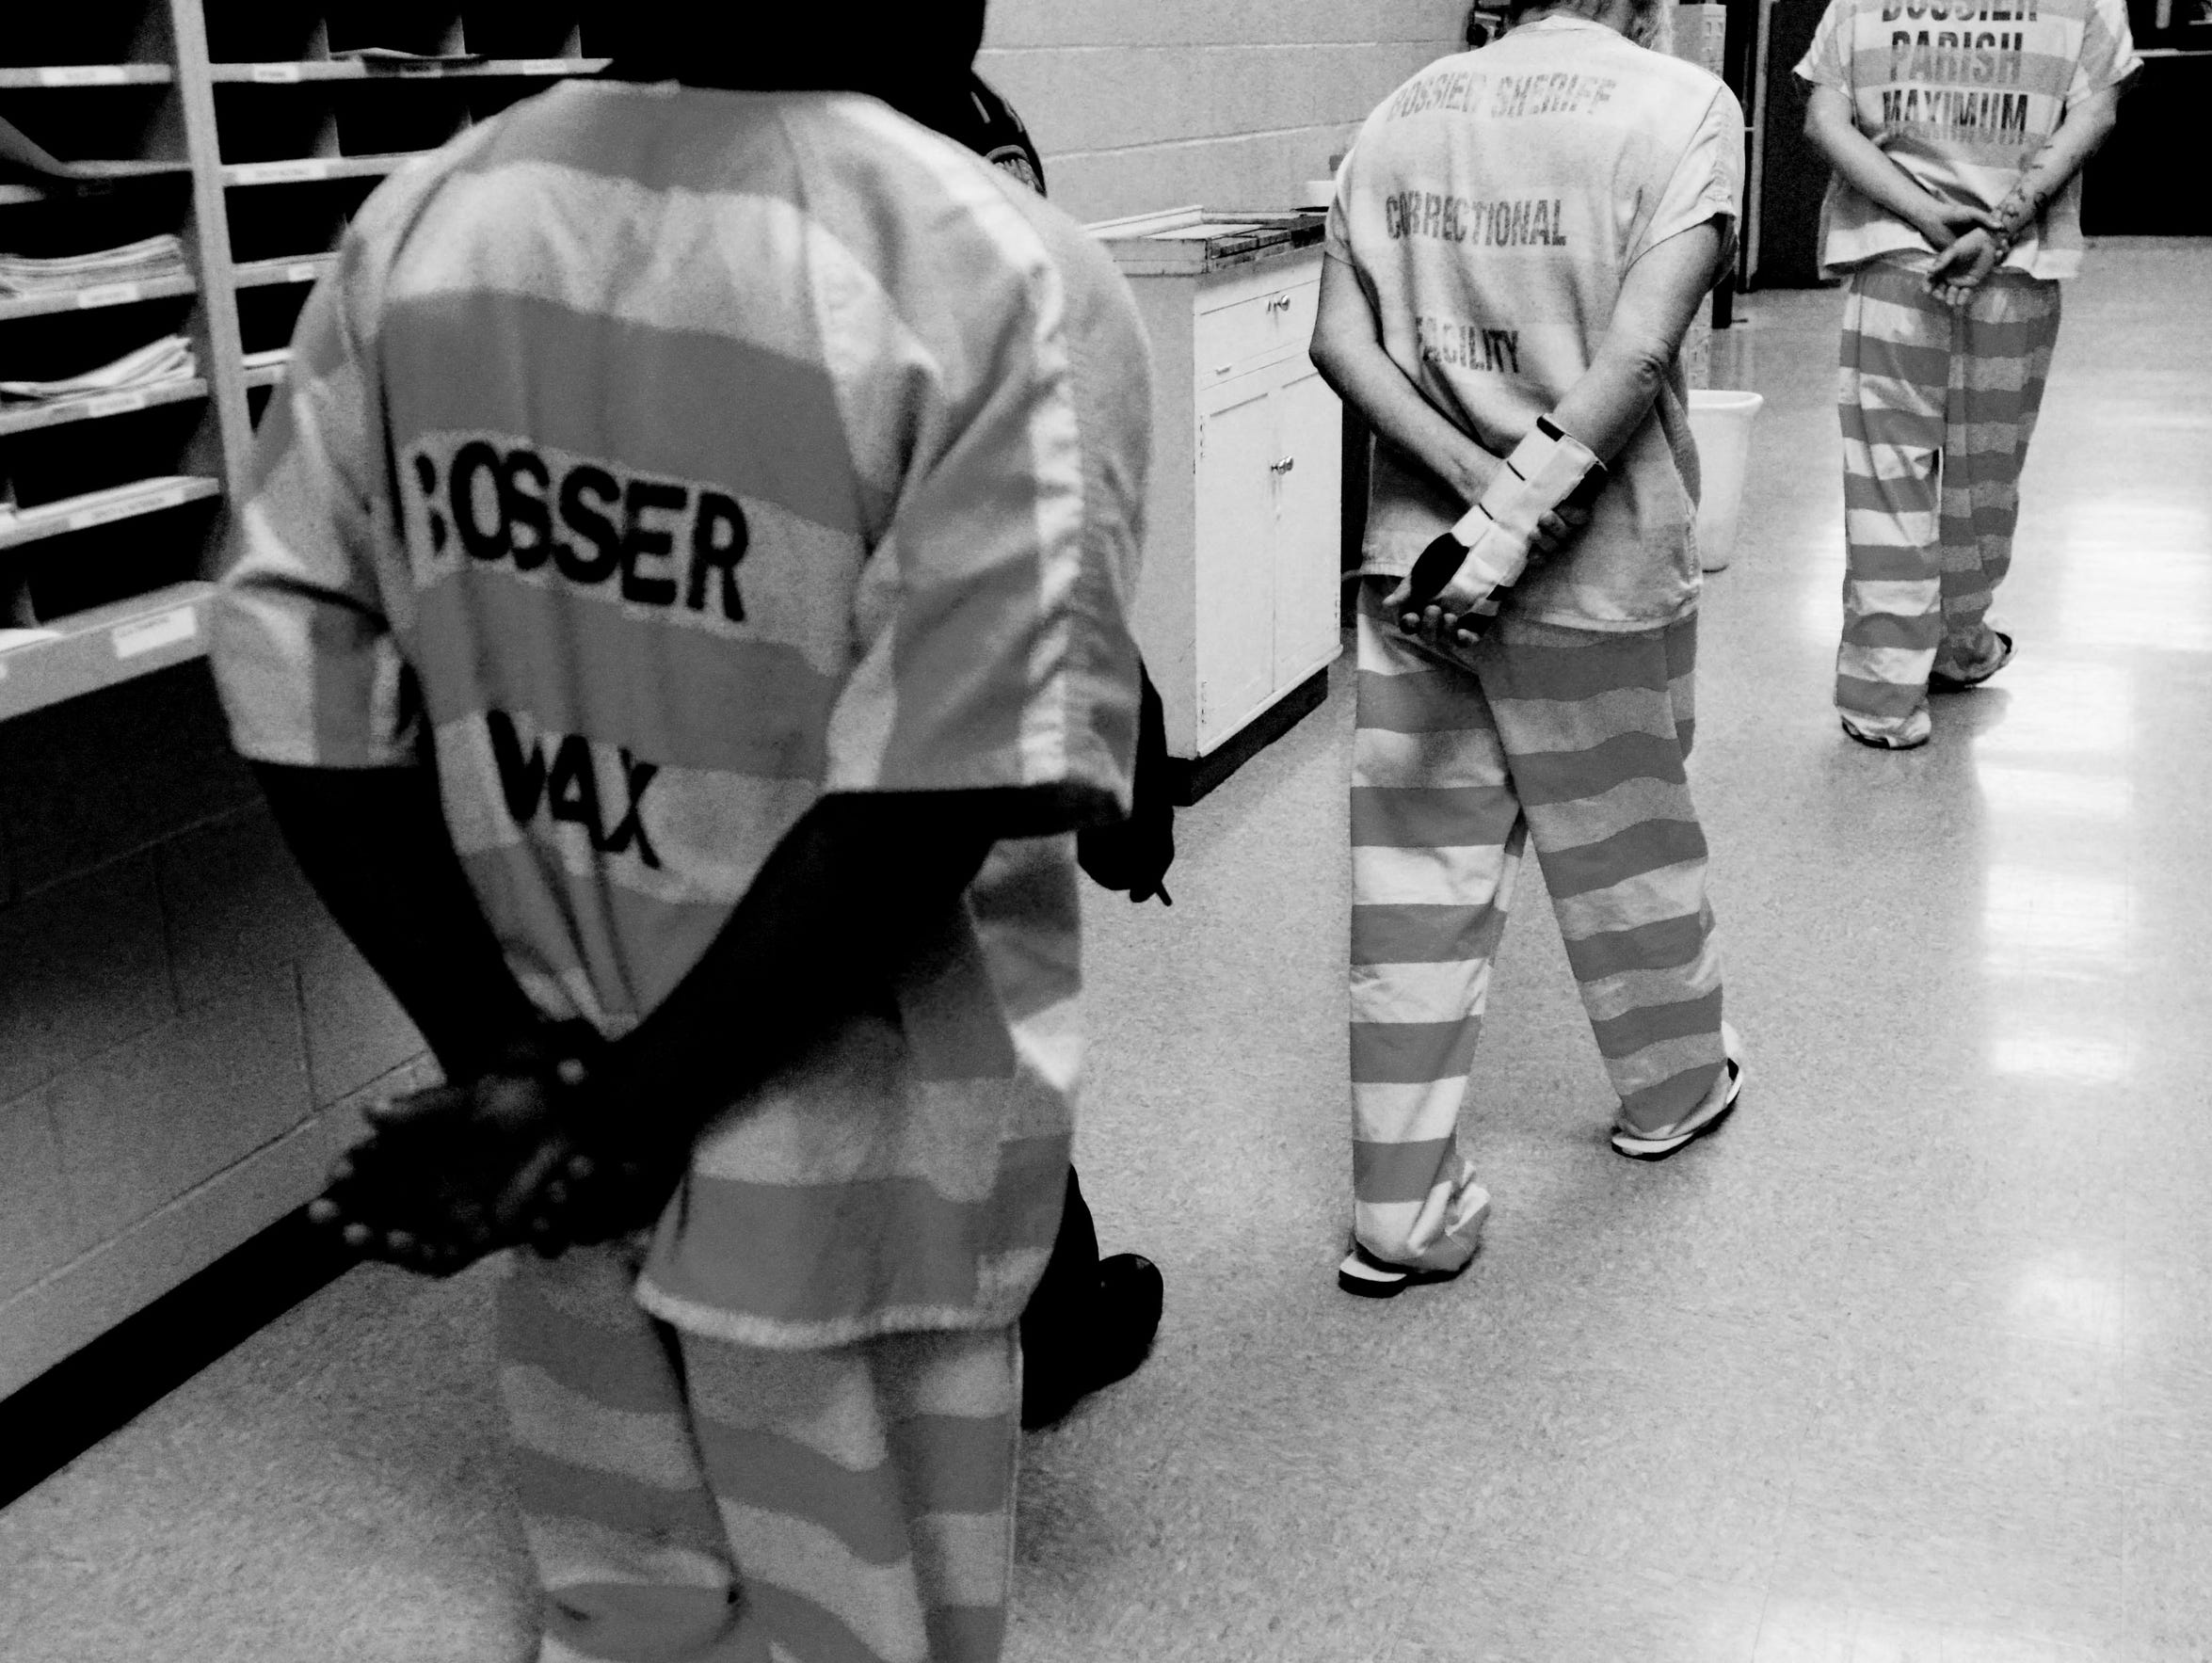 Inmates at the Bossier Maximum Security Facility in